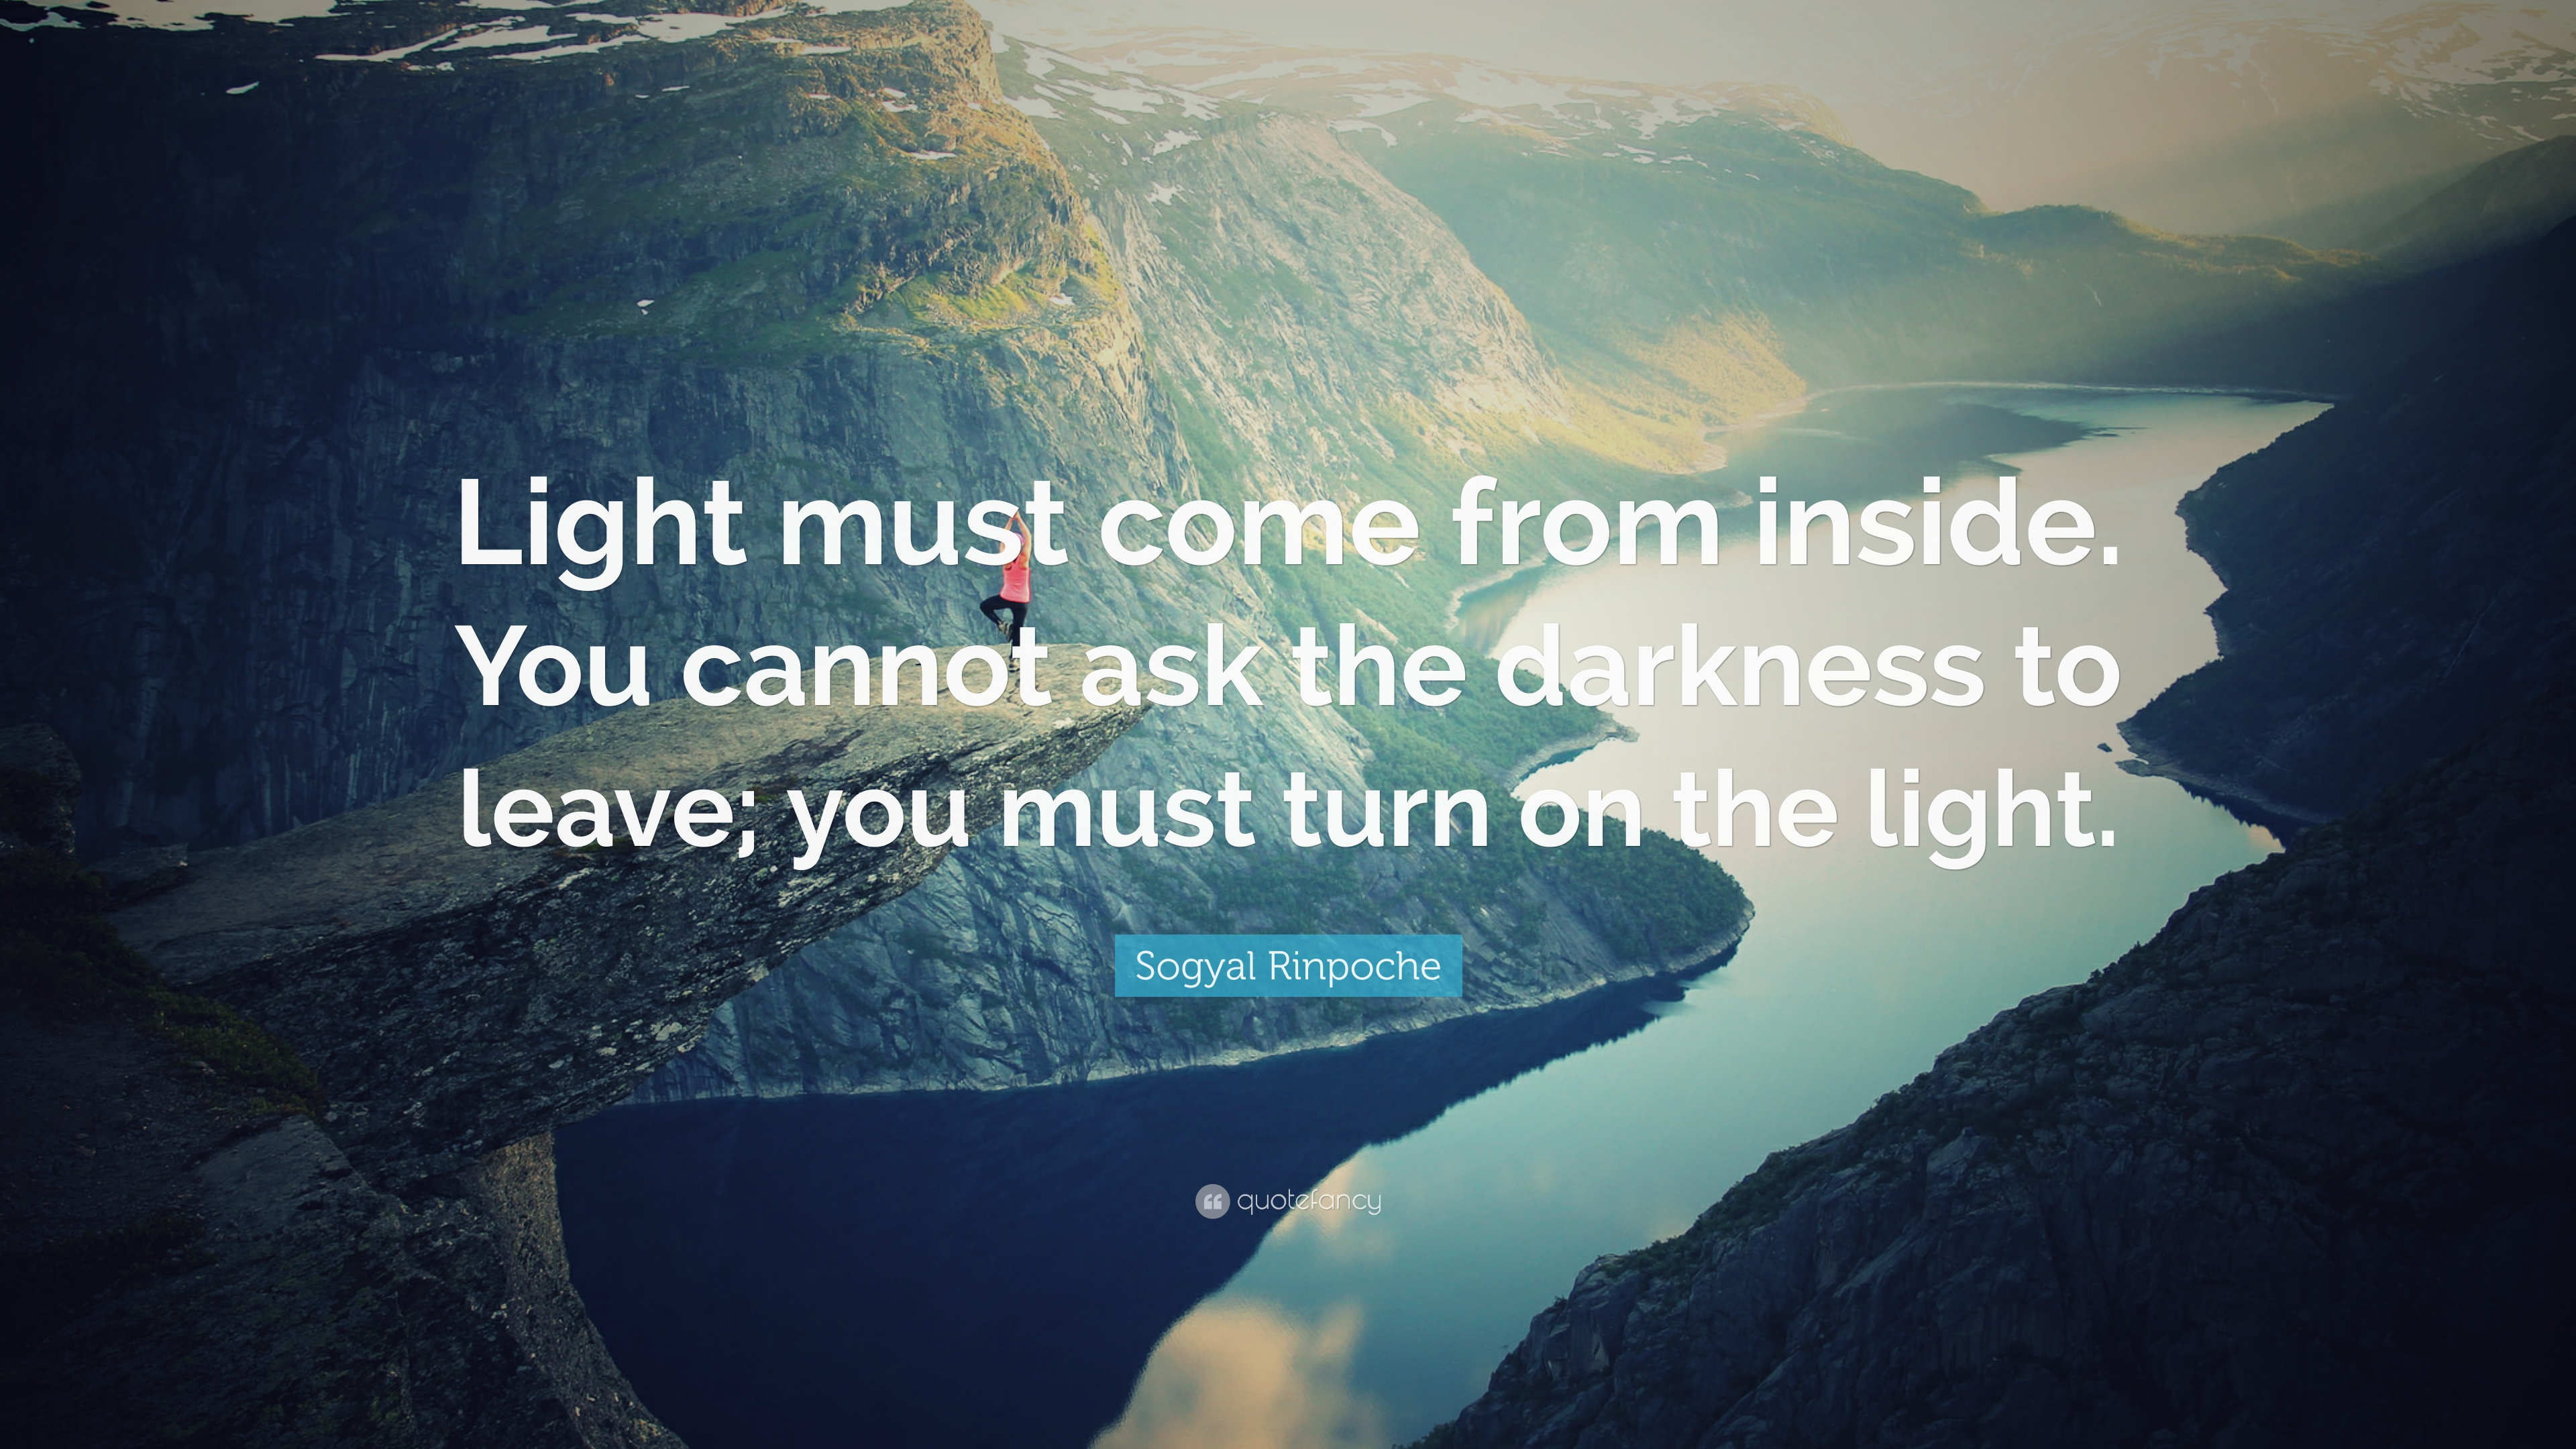 Sogyal rinpoche quote light must come from inside you cannot sogyal rinpoche quote light must come from inside you cannot ask the darkness sciox Choice Image